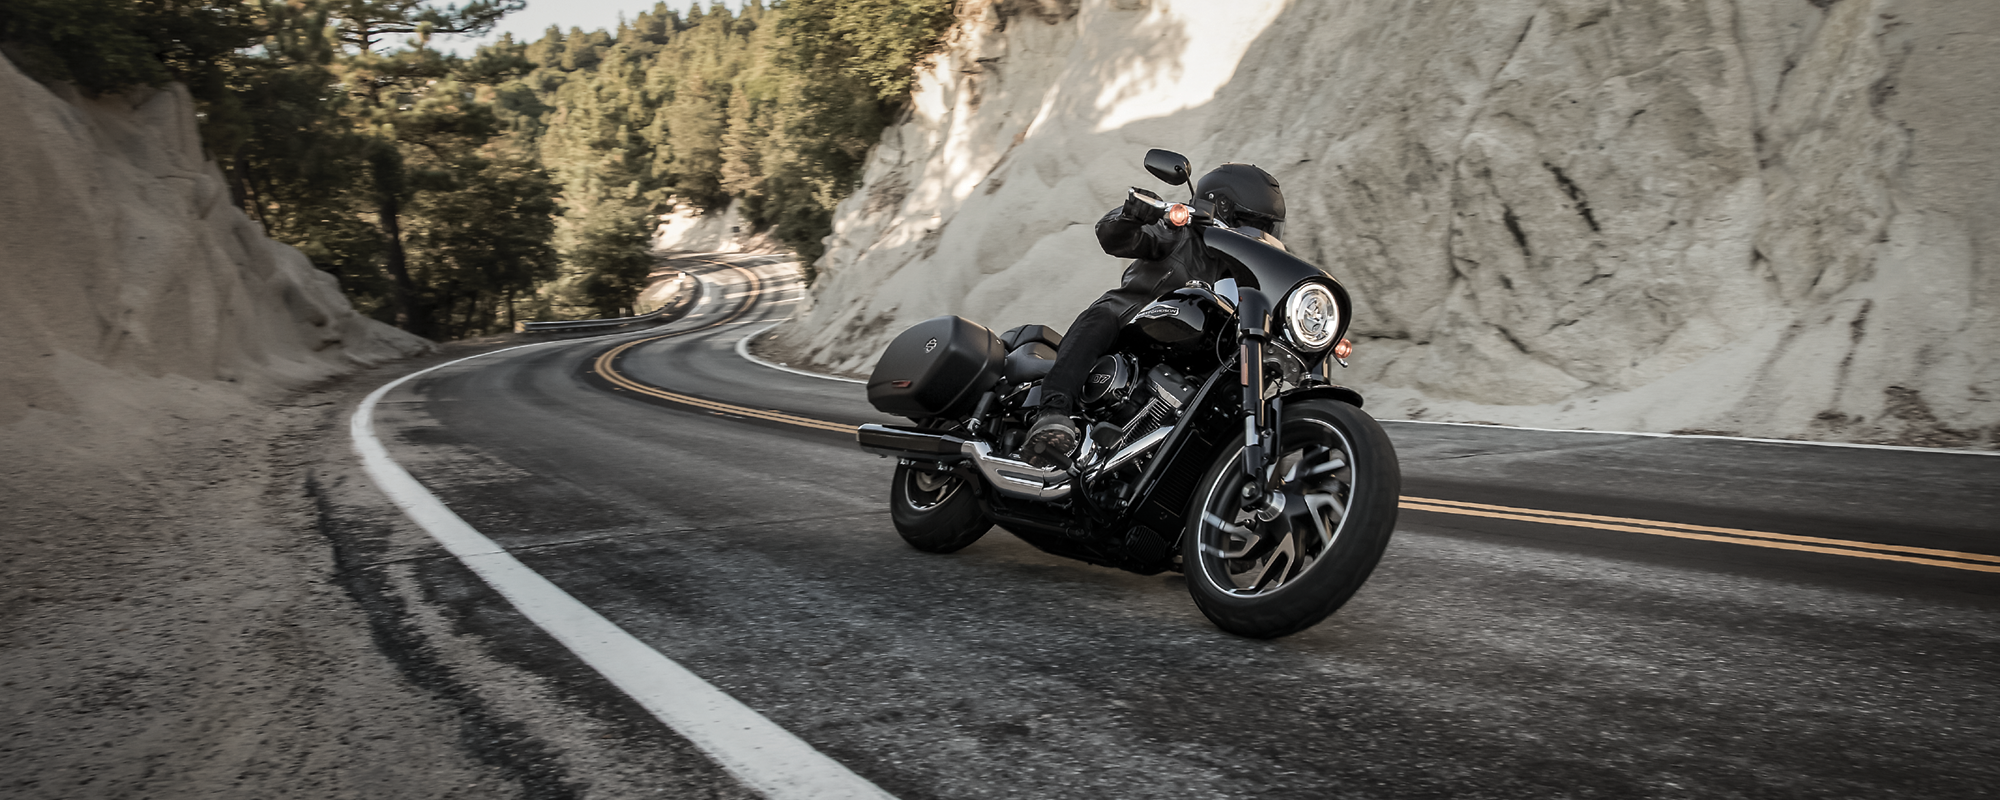 Find Your Dream Ride at Harley-Davidson of Asheville